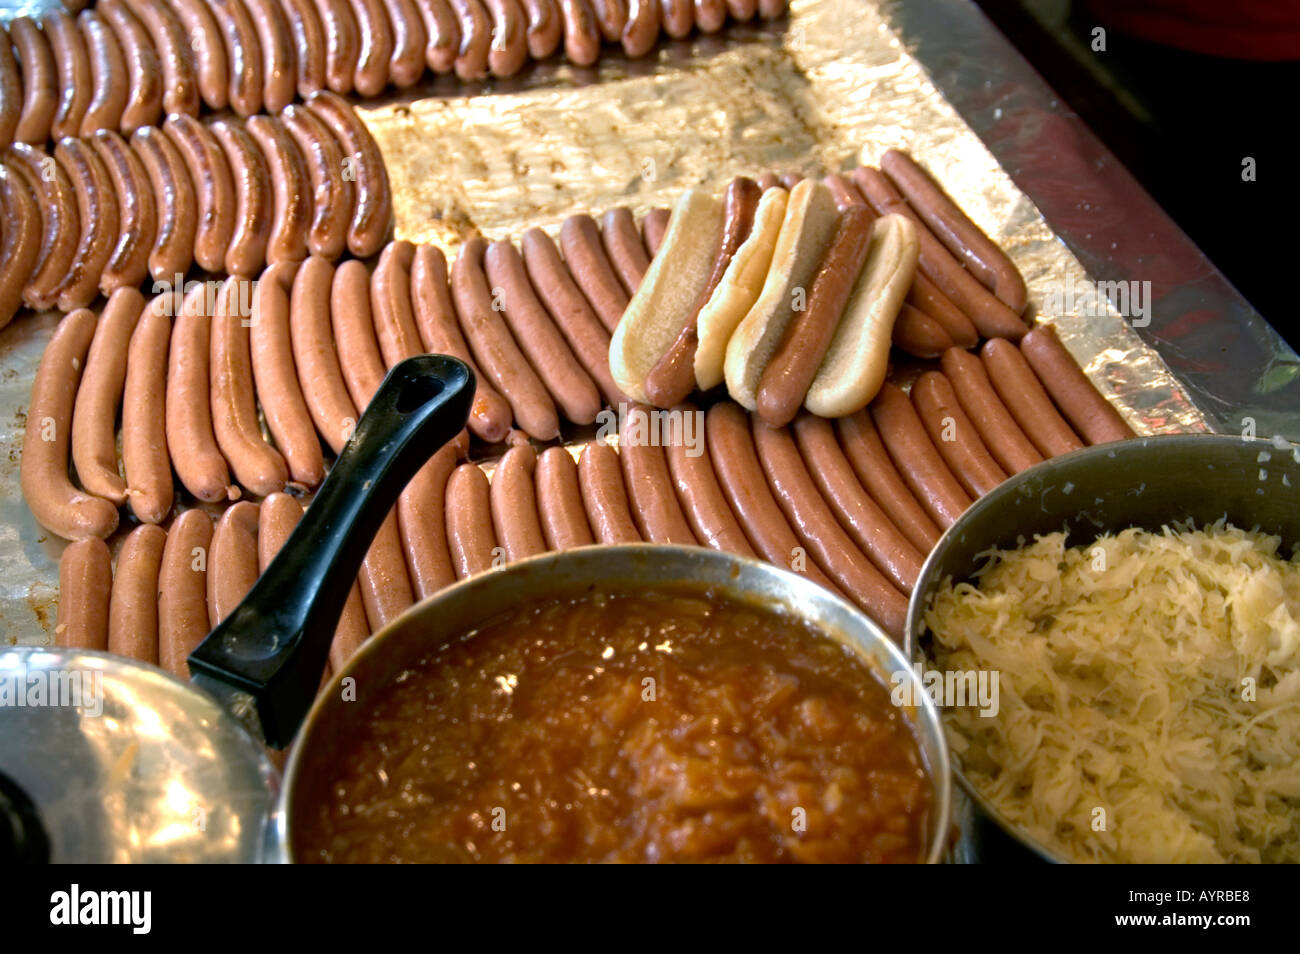 detail of hot dogs inside gray s papaya hot dog shop greenwich stock photo royalty free image. Black Bedroom Furniture Sets. Home Design Ideas